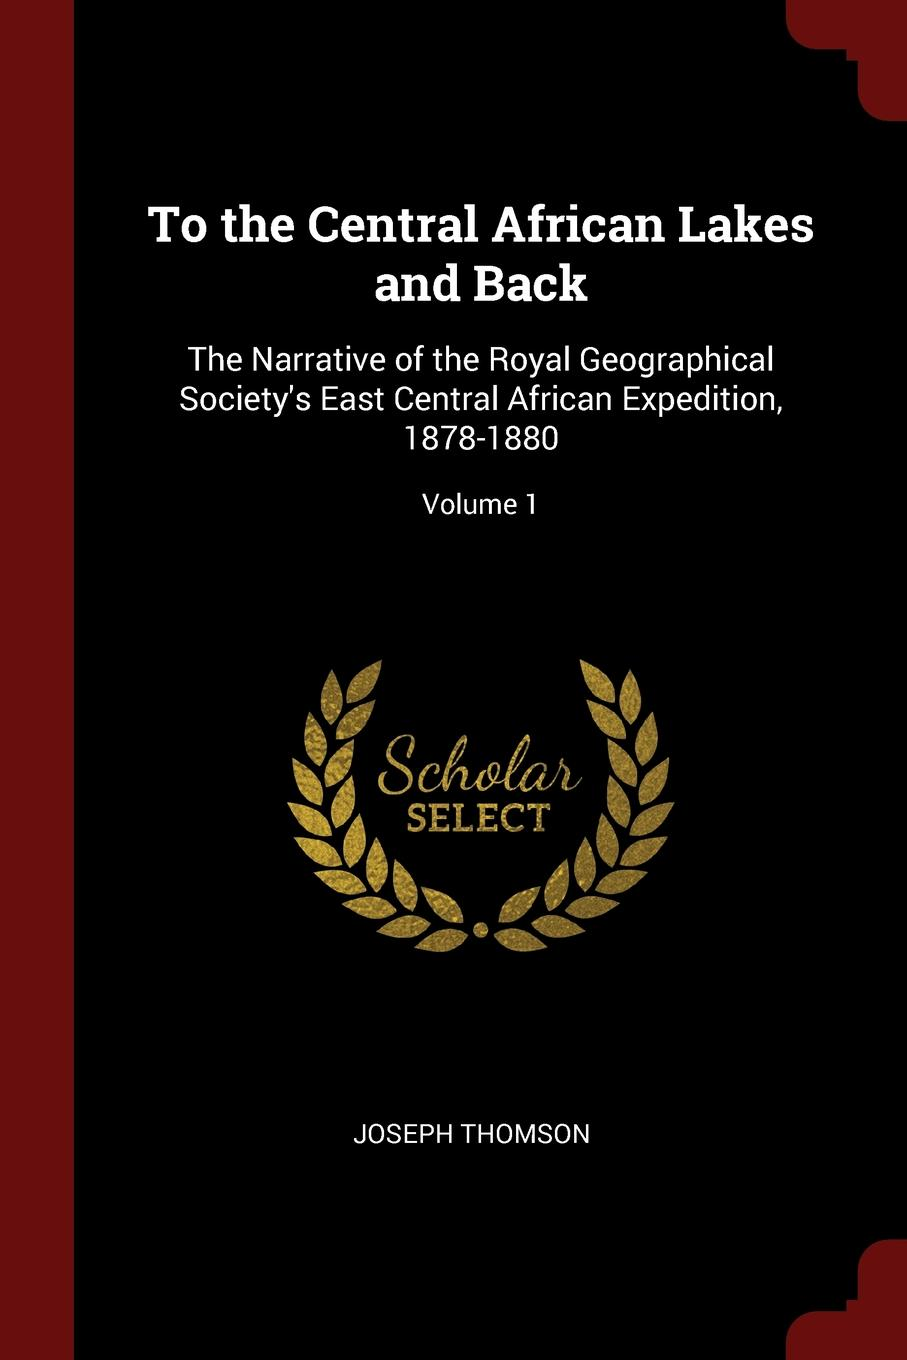 To the Central African Lakes and Back. The Narrative of the Royal Geographical Society.s East Central African Expedition, 1878-1880; Volume 1